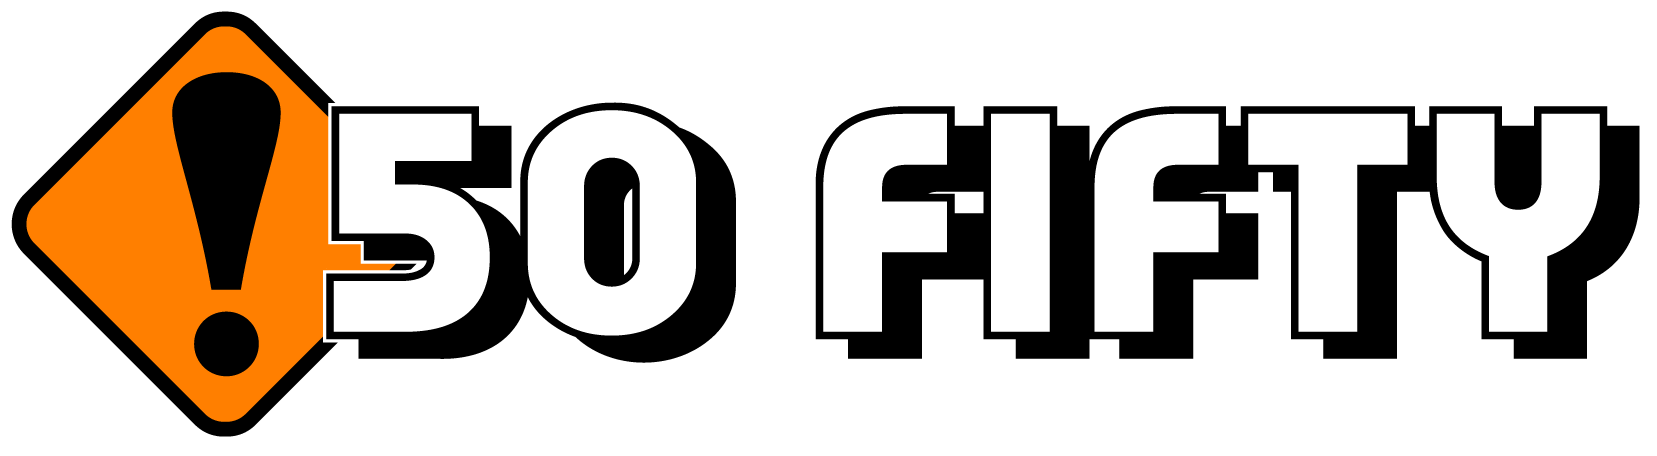 50 Fifty Traffic Management